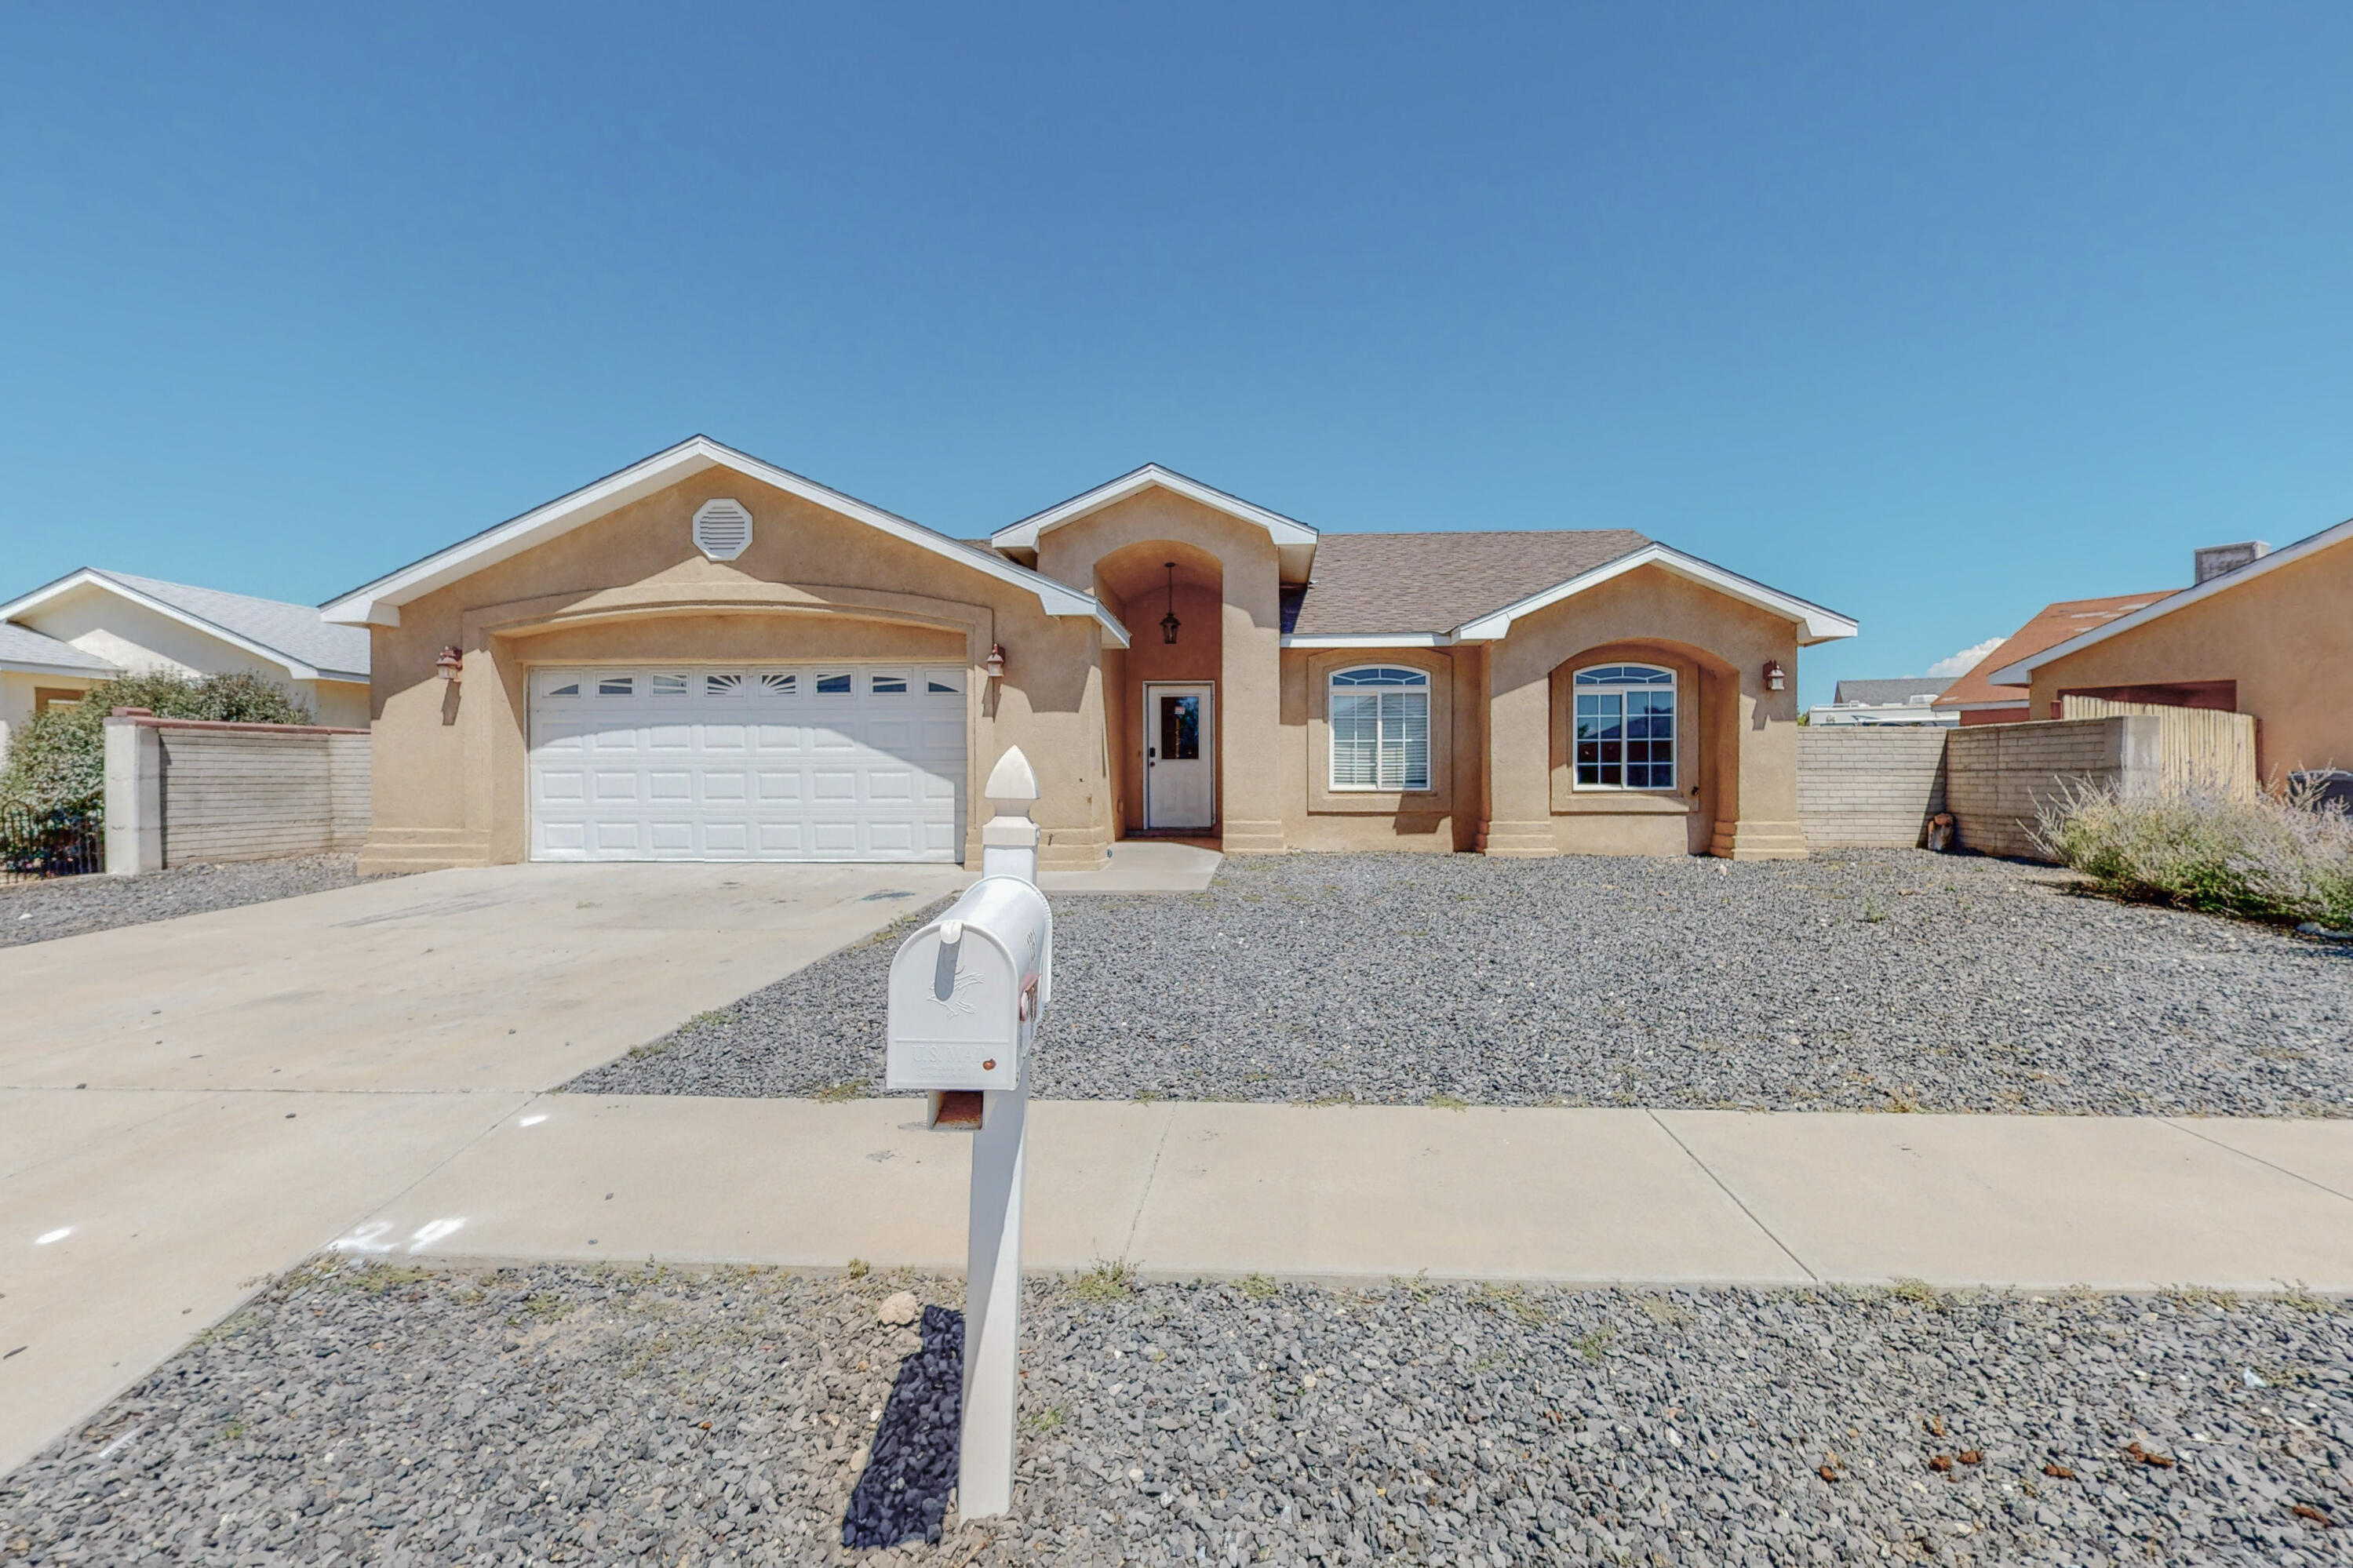 Charming home located close  to restaurants, shopping & so much more. Easy access to I-25 for commuting to work. This 3 bedroom 2 bath is a great place to call home.